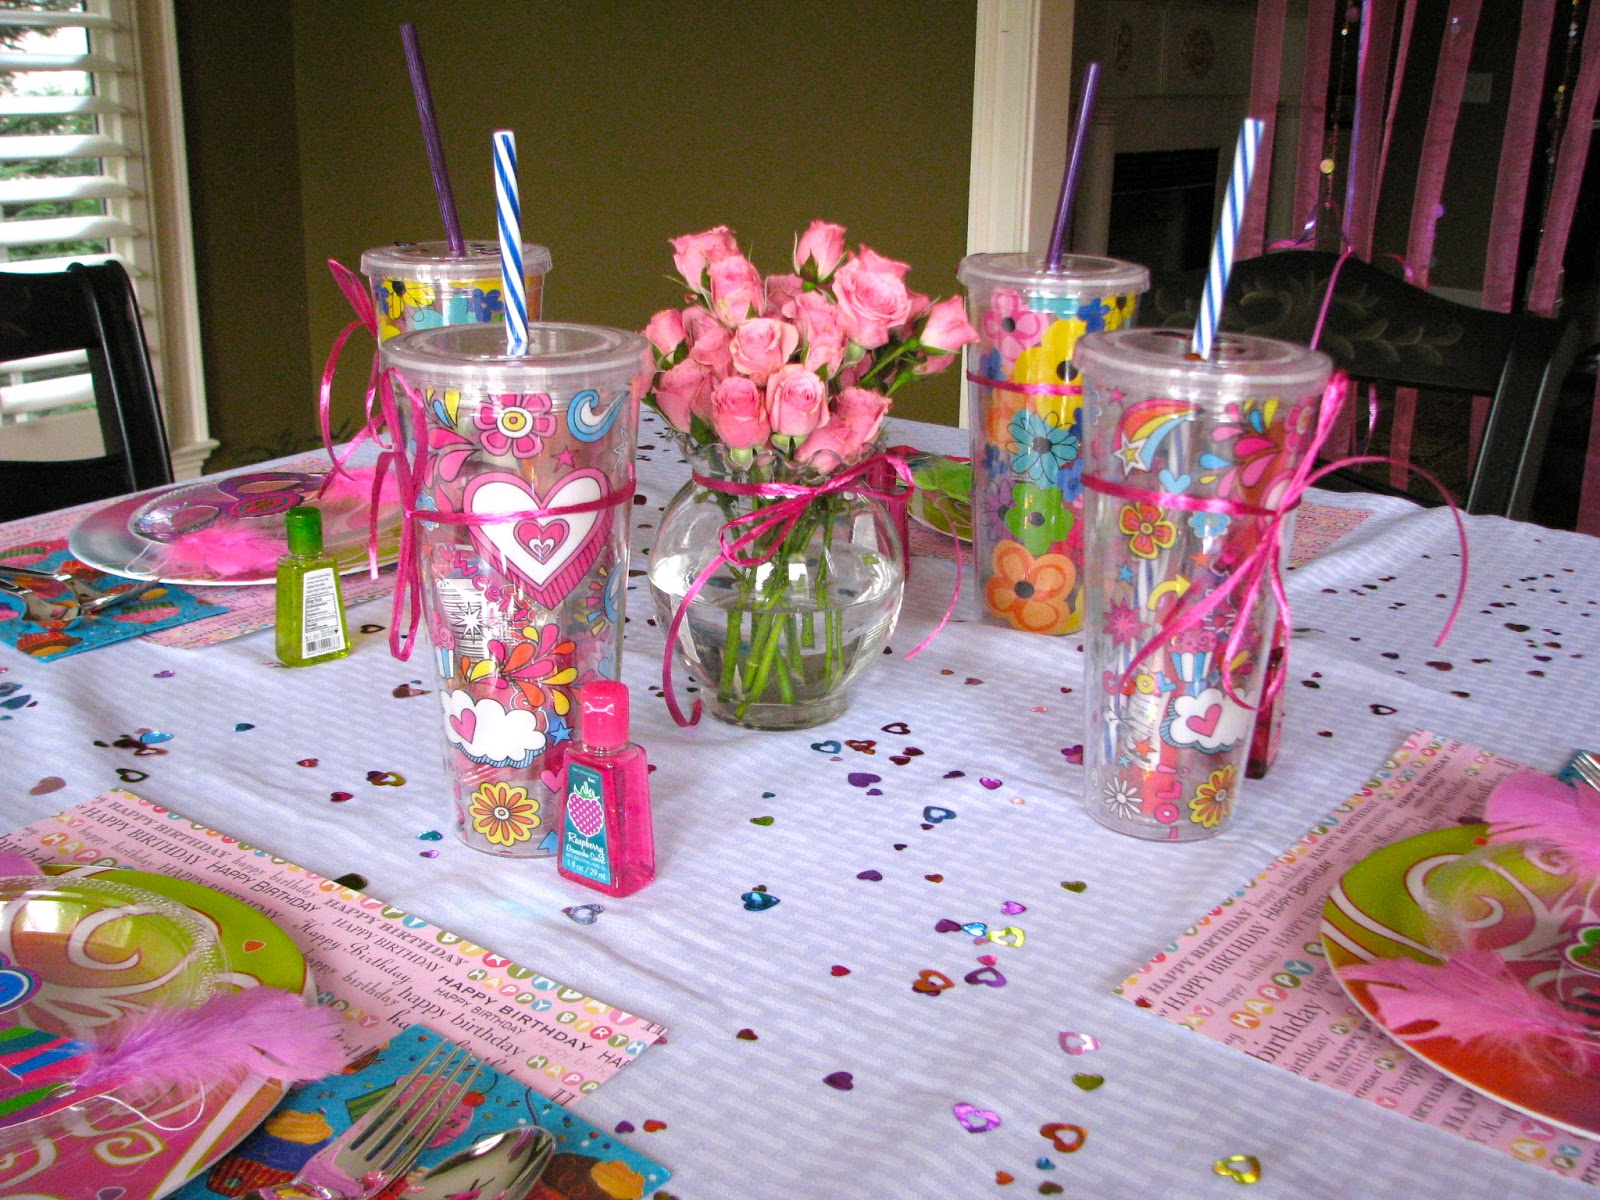 Homemadeville your place for homemade inspiration girl 39 s for Baby girl birthday party decoration ideas